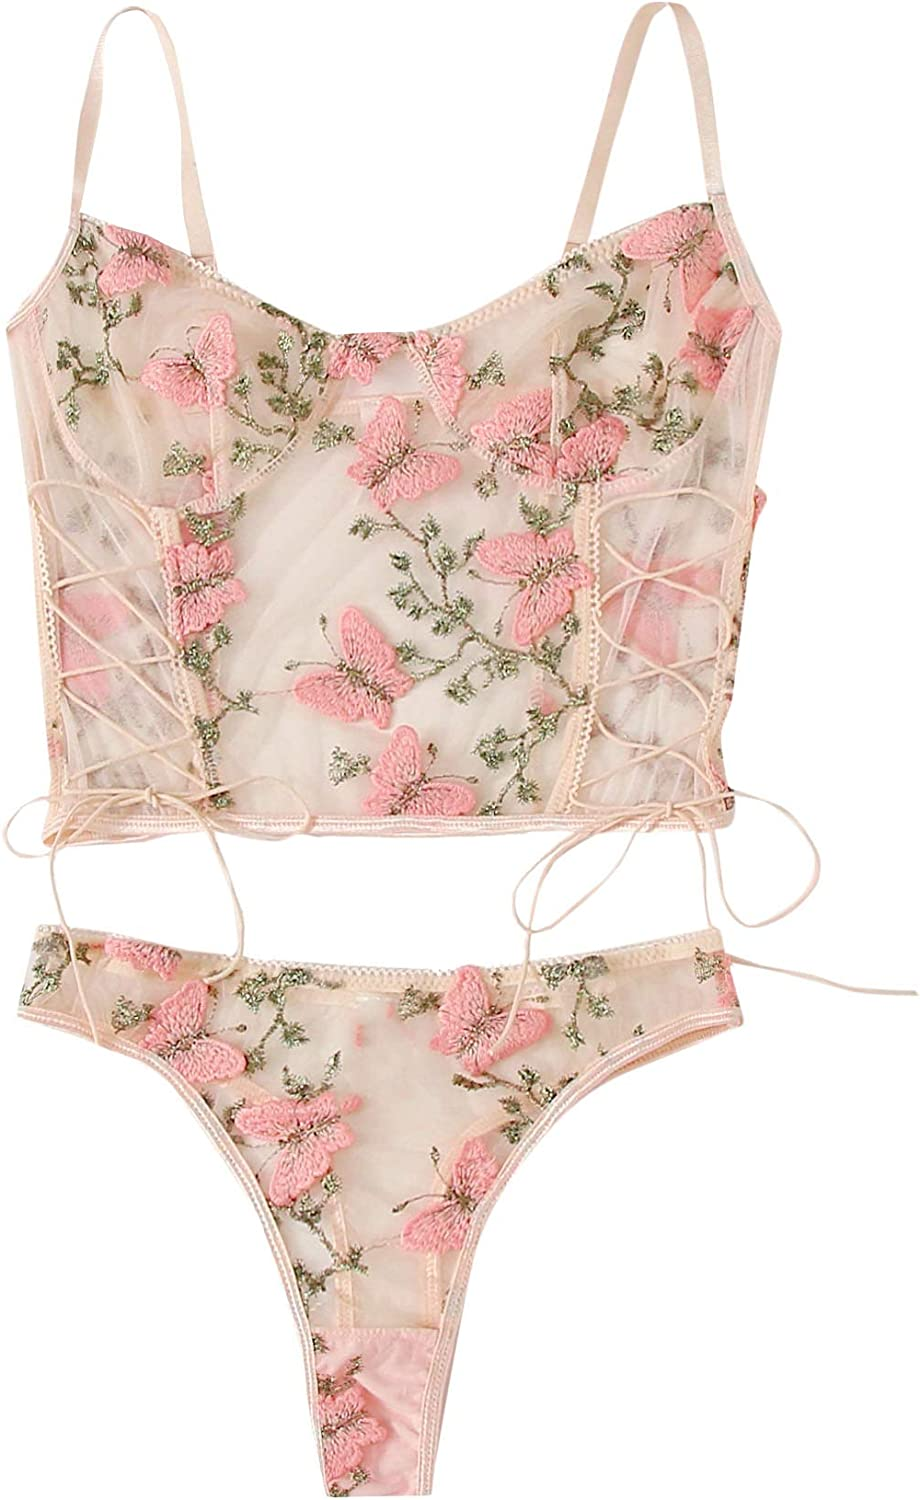 Special price for a limited time SheIn Women's Butterfly Pattern Embroidery Sexy Mesh half Lo Lingerie